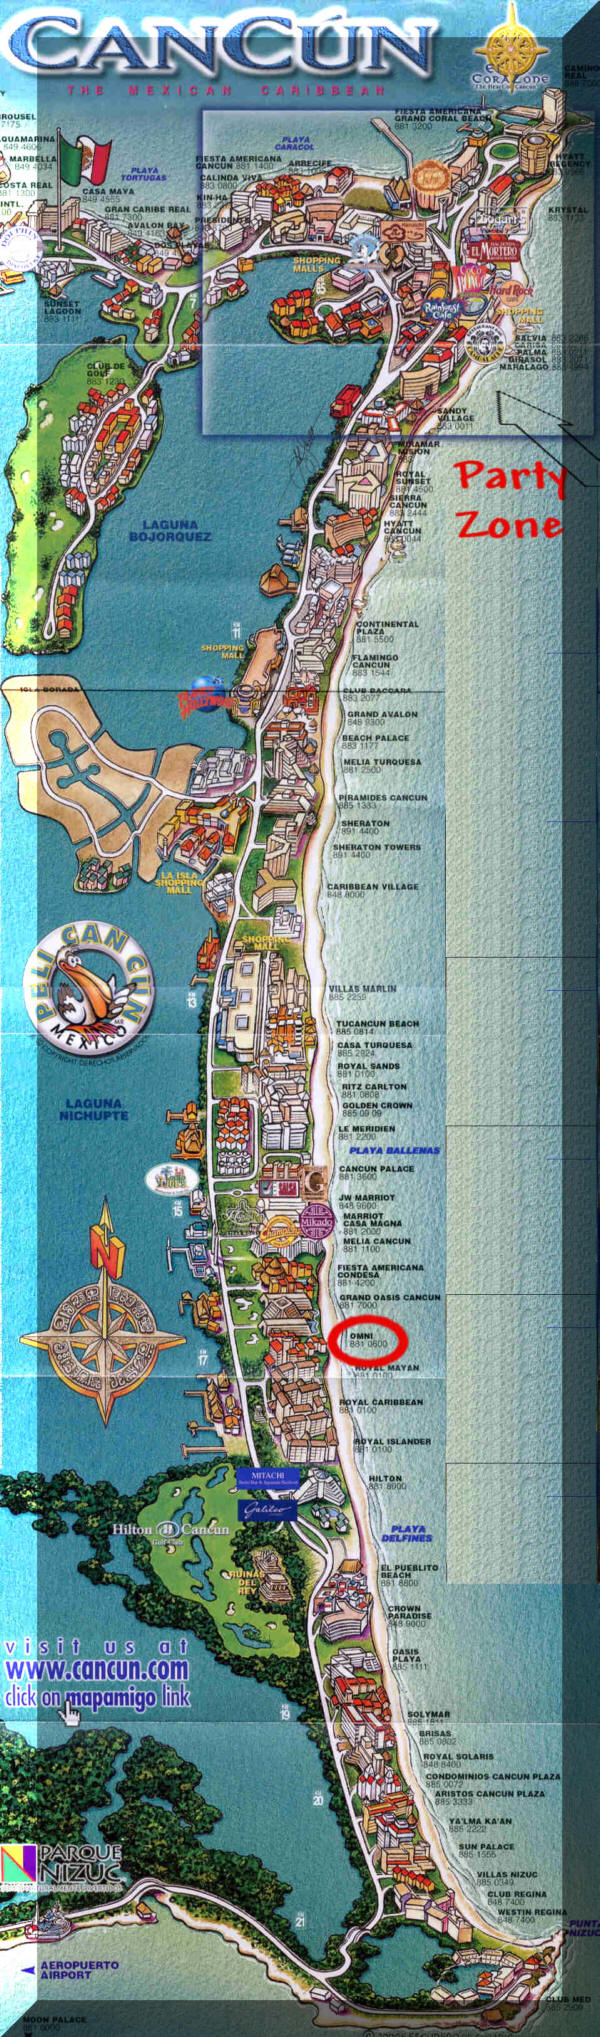 Cancun – Cancun Tourist Map